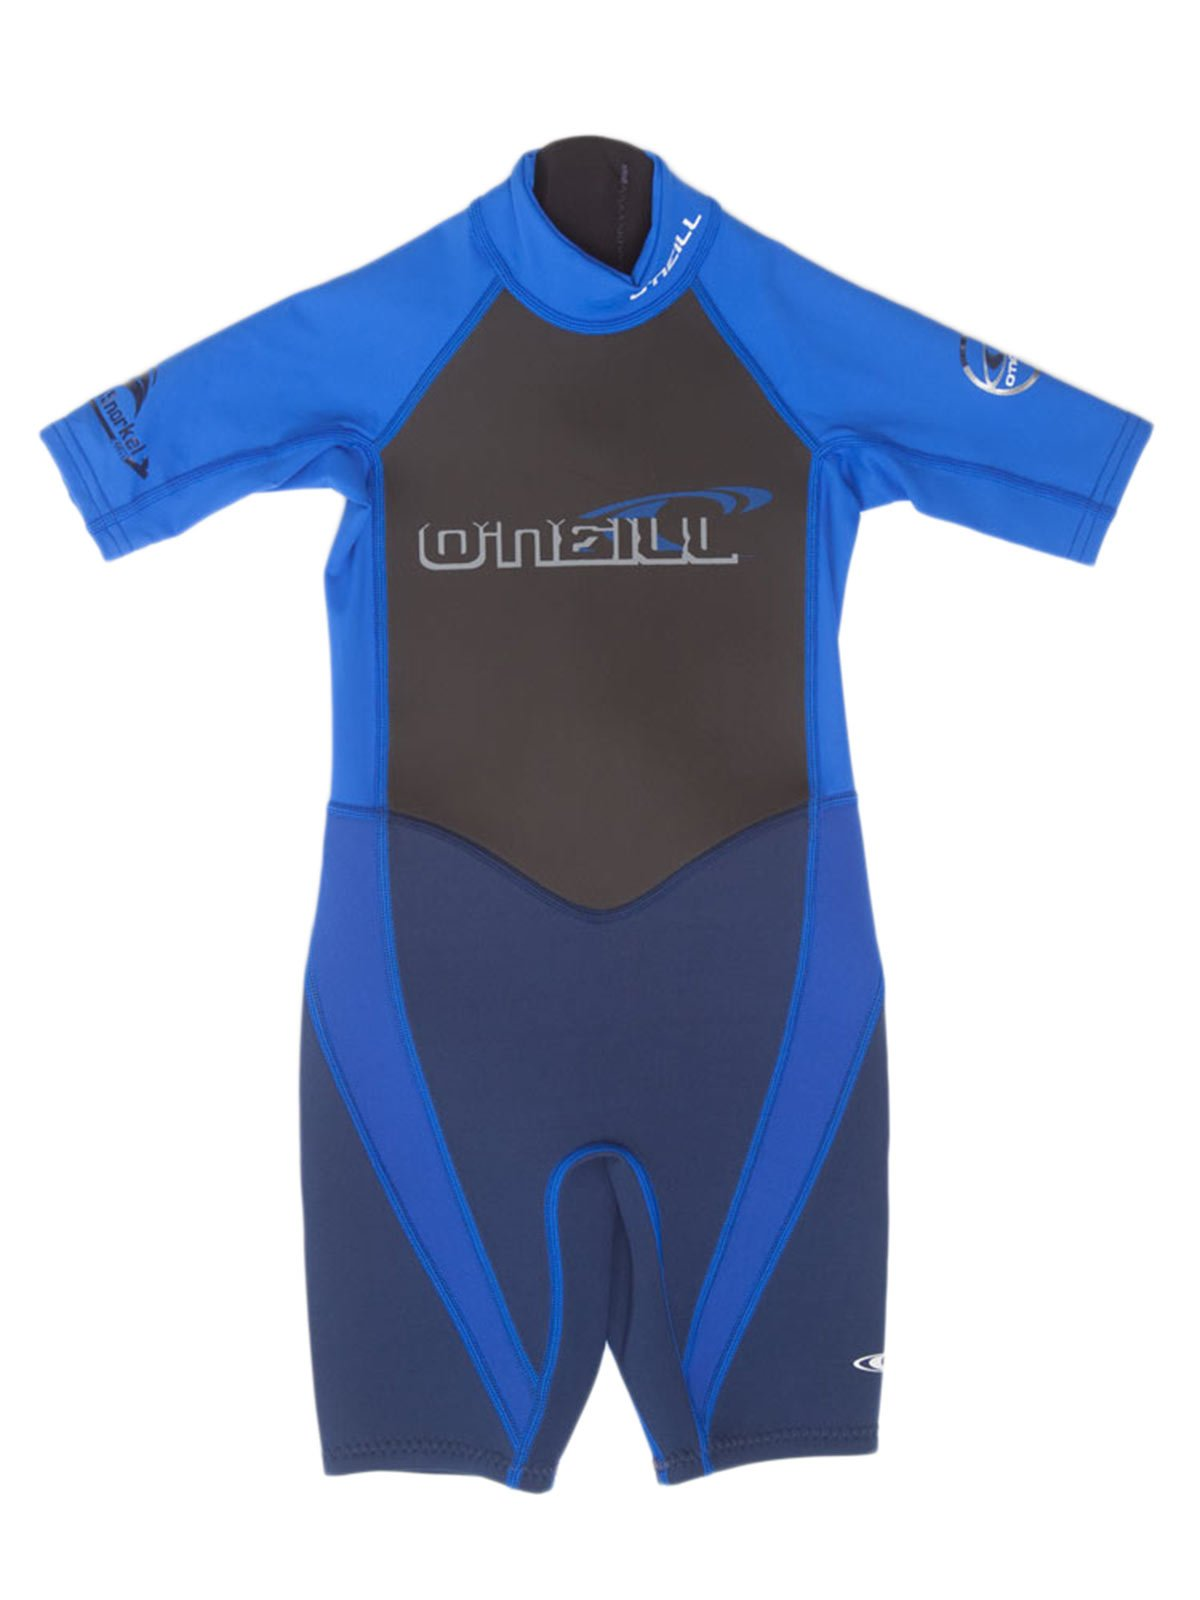 O'Neill Reactor Hybrid kids shorty wetsuit 12 Navy/pacific blue